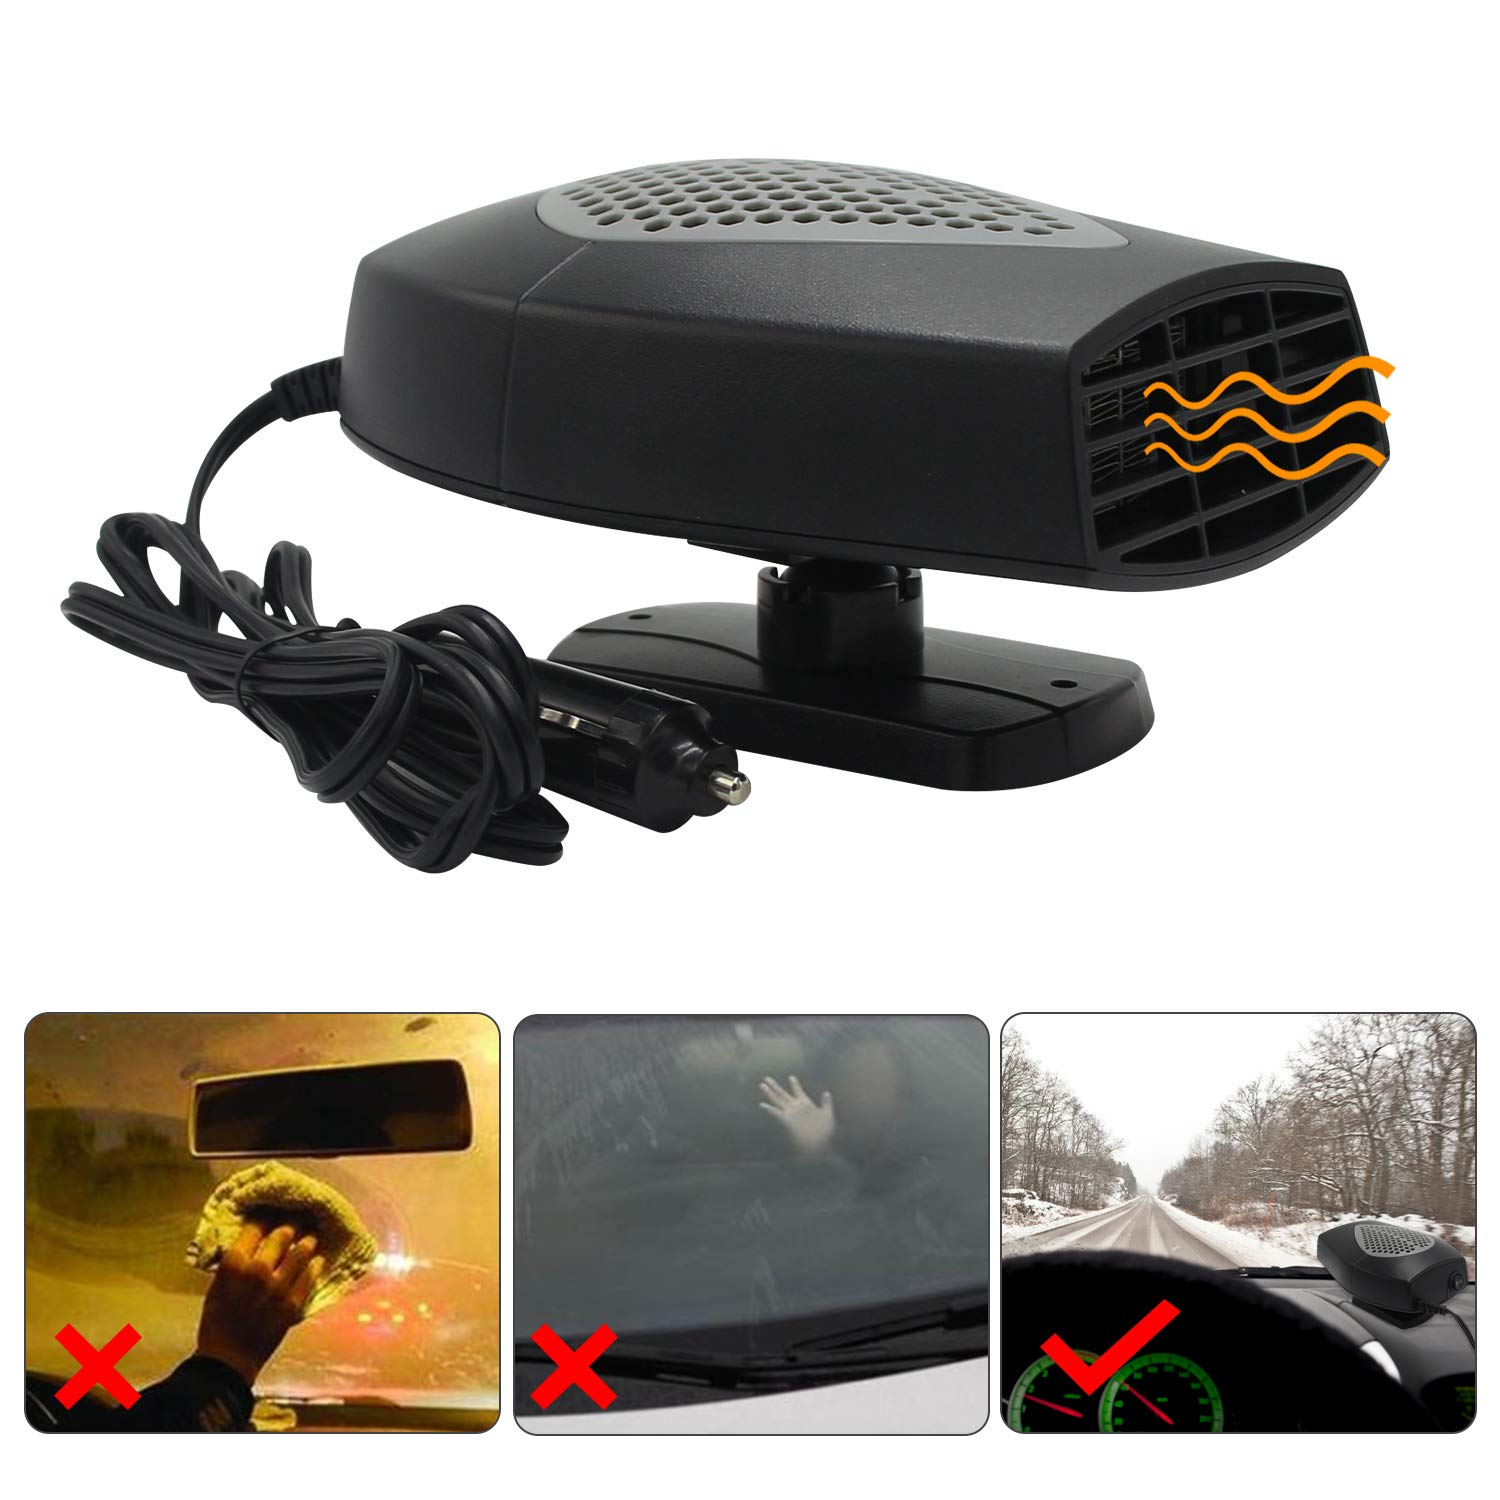 Windshield Car Heater - Portable Car Defroster Defogger 12V Truck Car Heat Cooling Fan 150W 3-Outlet Plug in Cigarette Lighter (12V Vehicle)